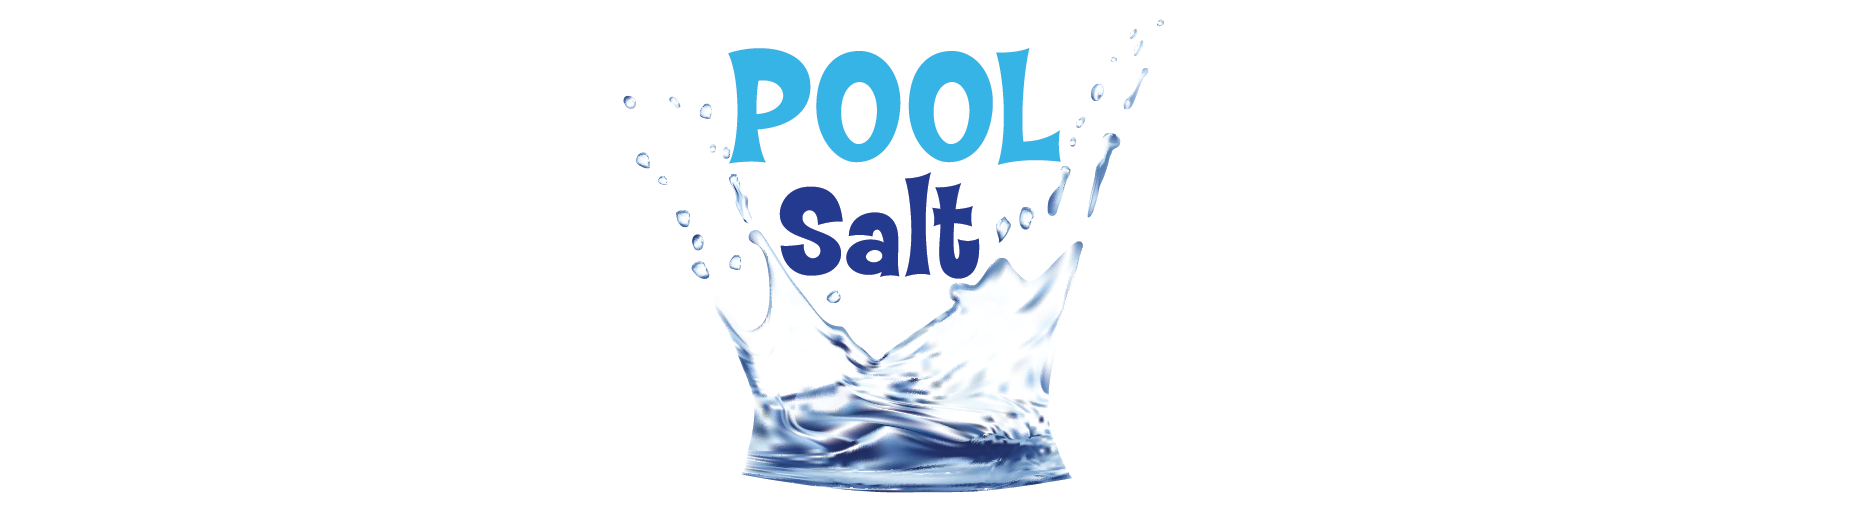 POOL SALT LOGO.png